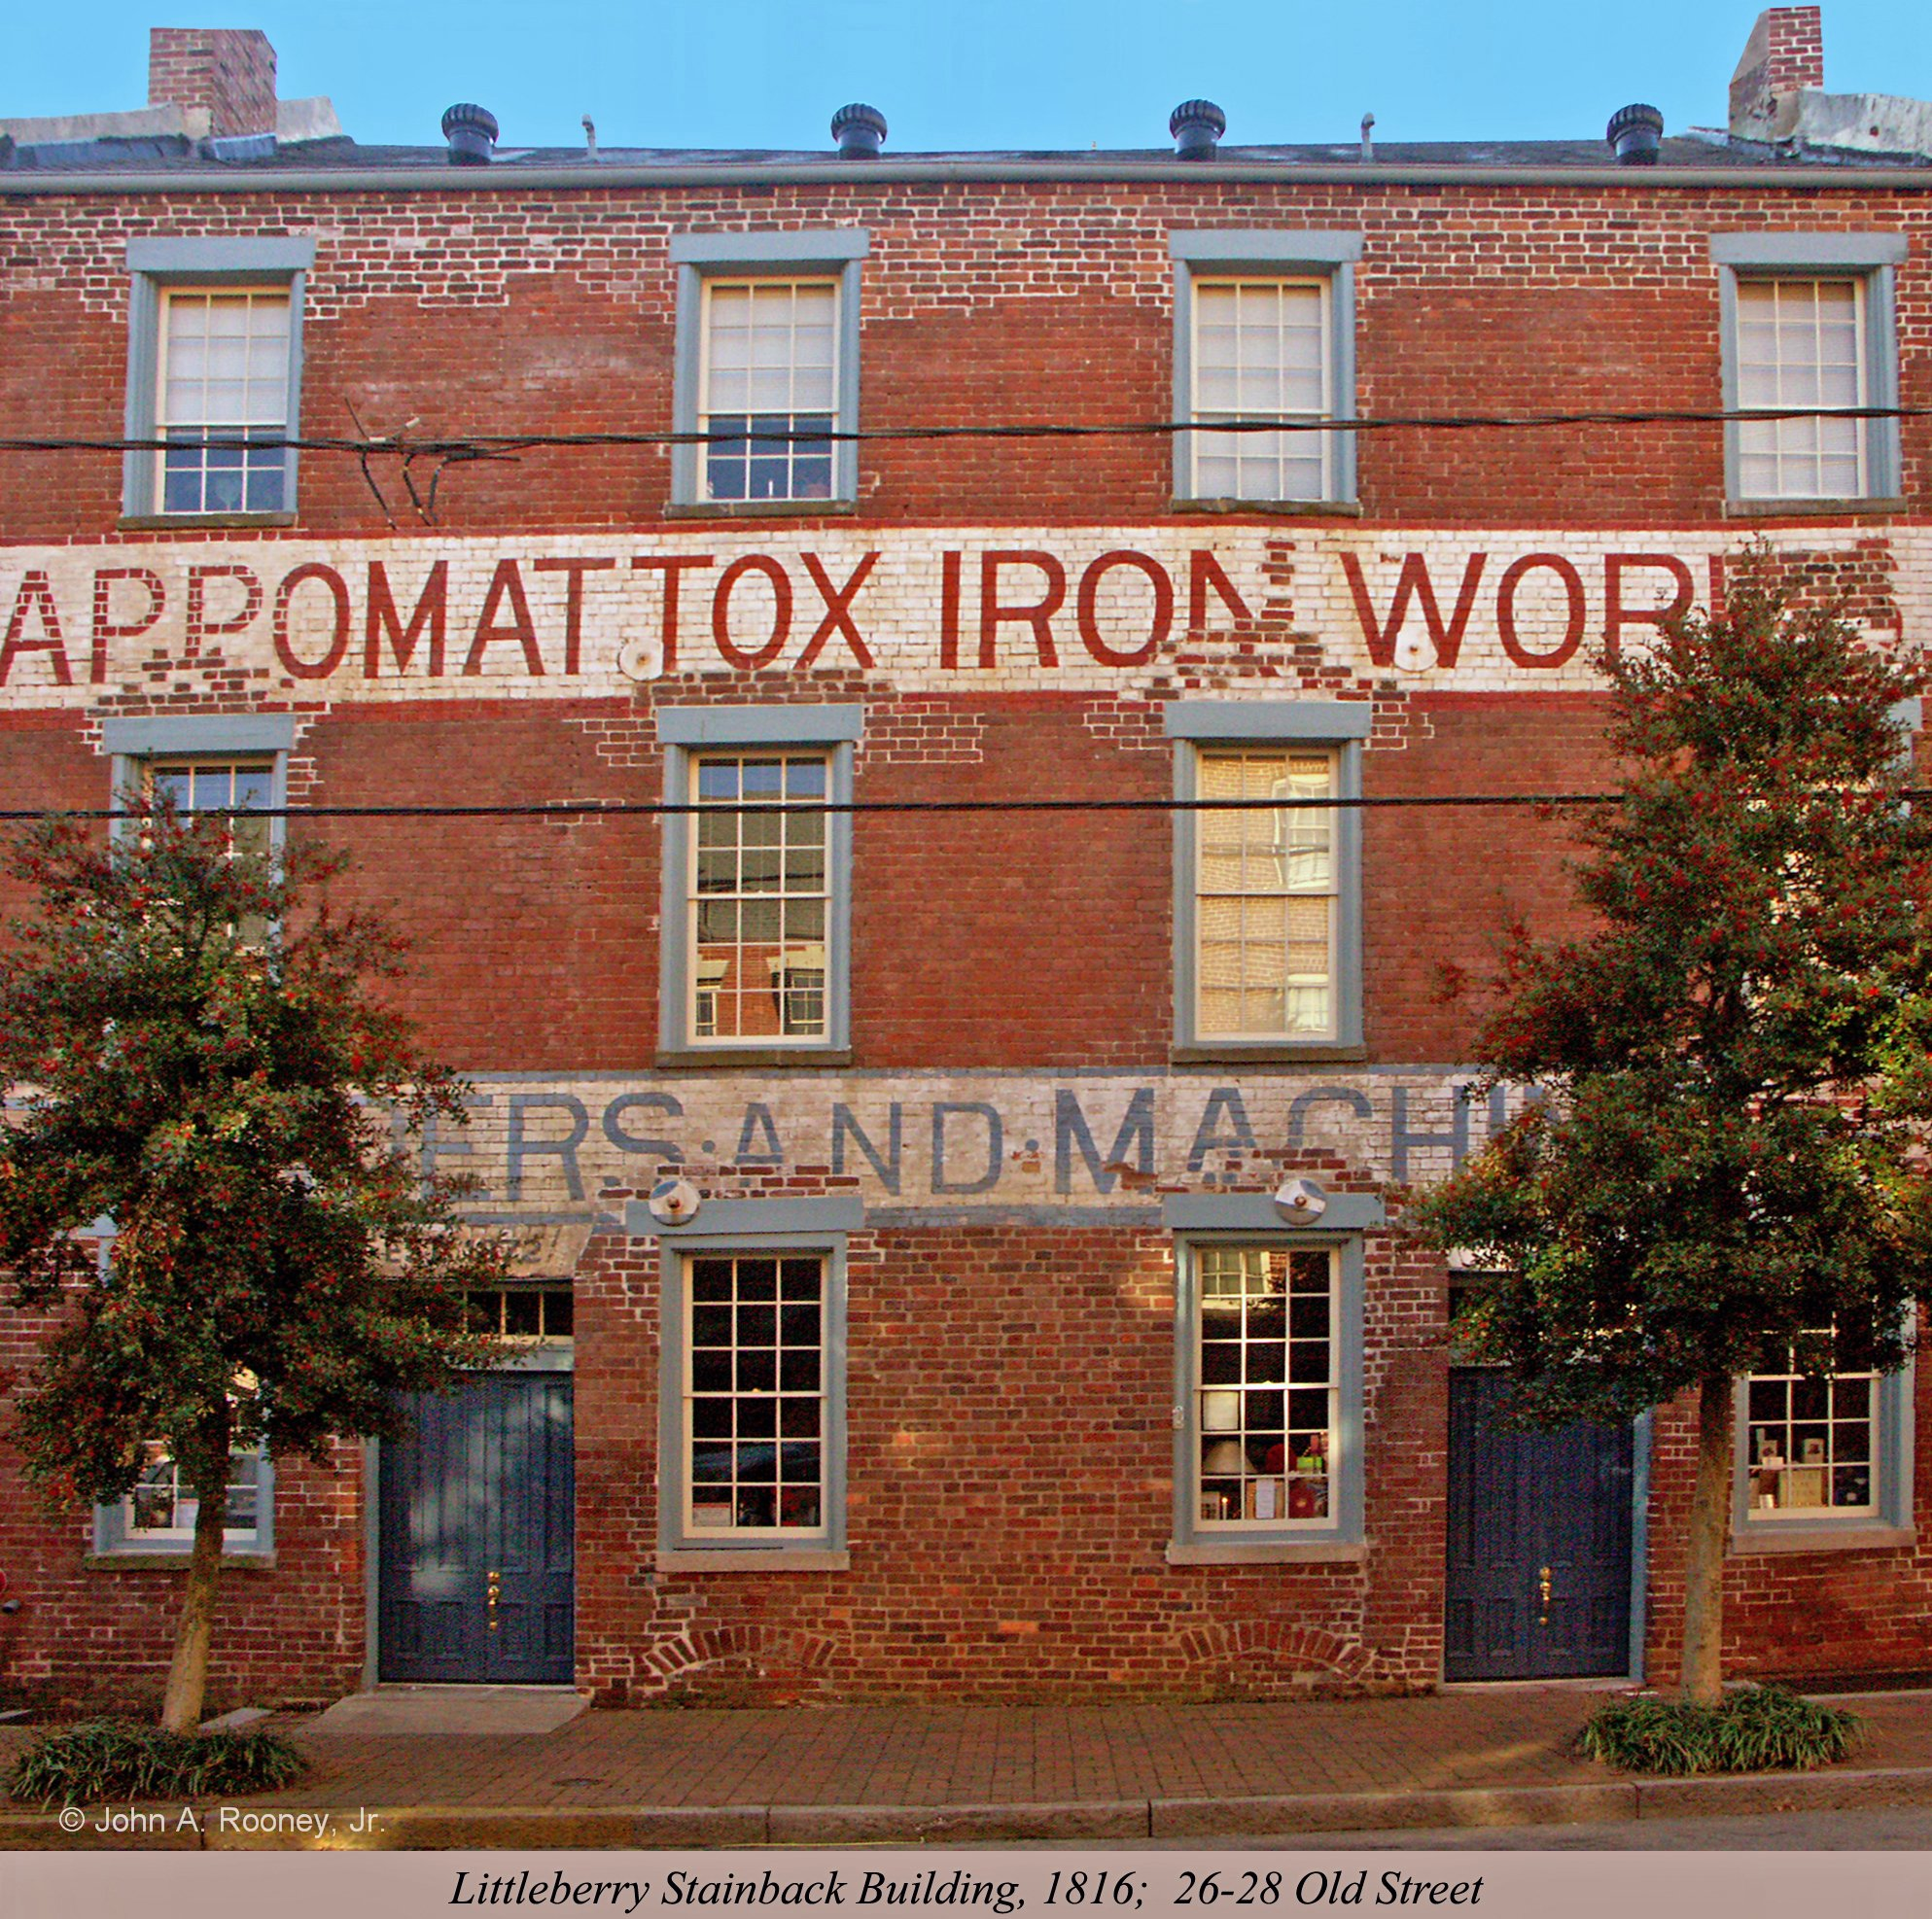 The Appomattox Iron Works machine shop was one of the few buildings spared in Petersburg's fire of 1815. It is the city's last remaining example of a commercial building in which the living quarters were housed in an apartment under a separate roof.